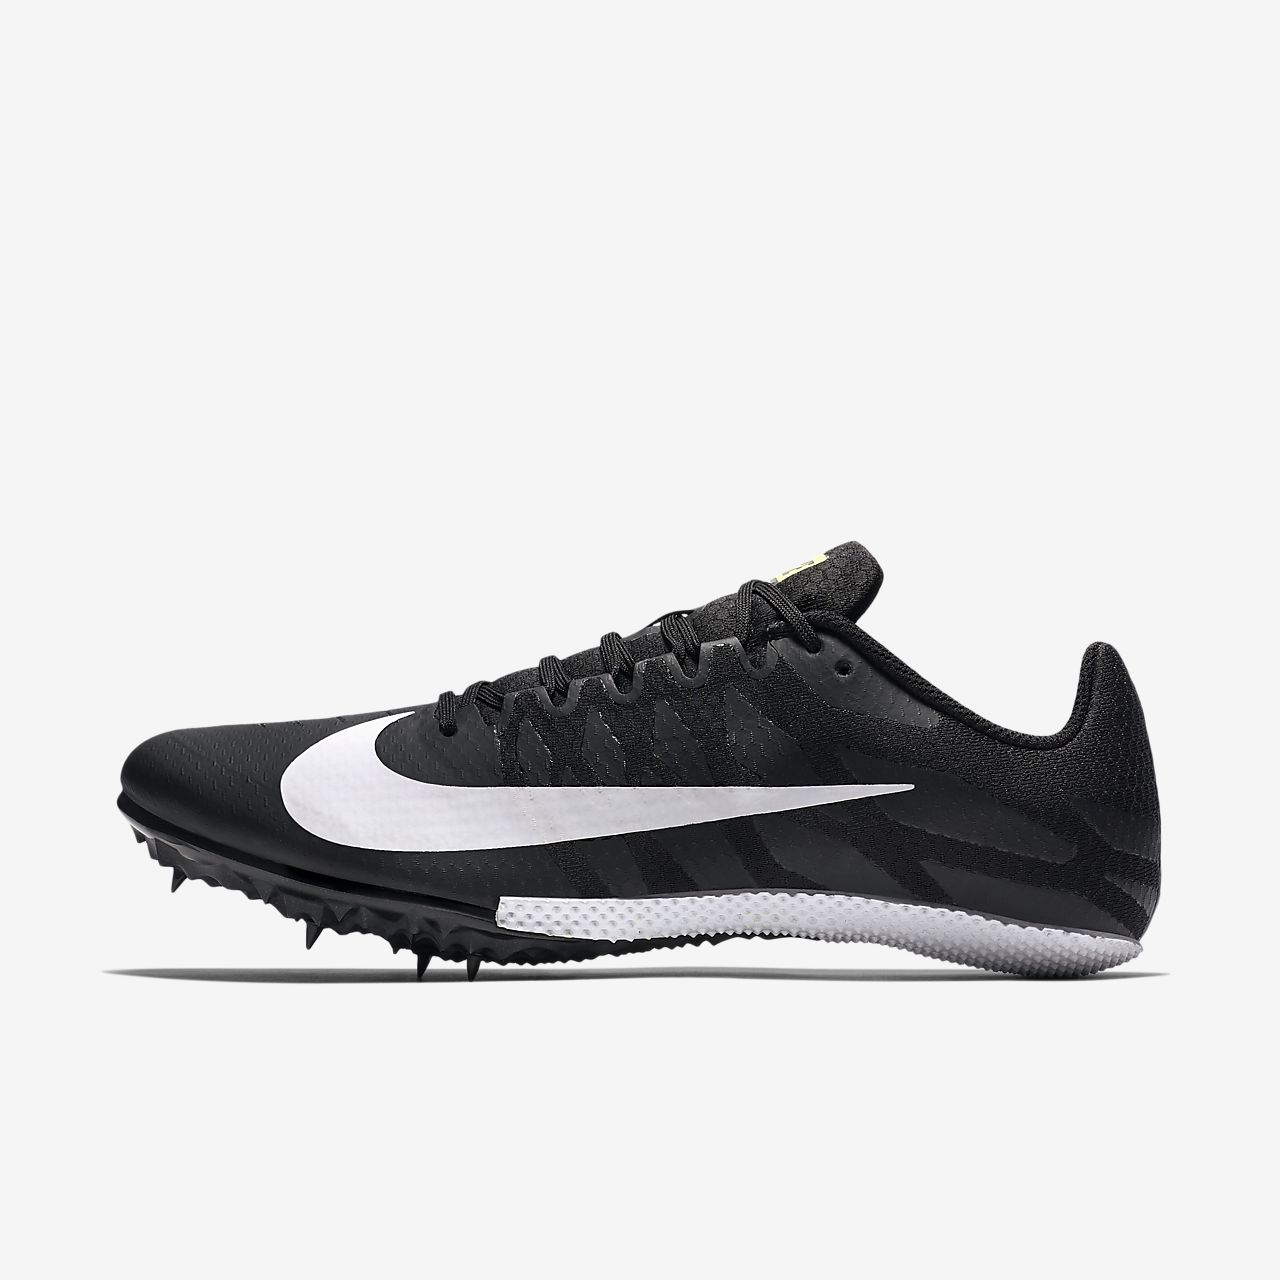 99605f10d3010 Nike Zoom Rival S 9 Unisex Track Spike